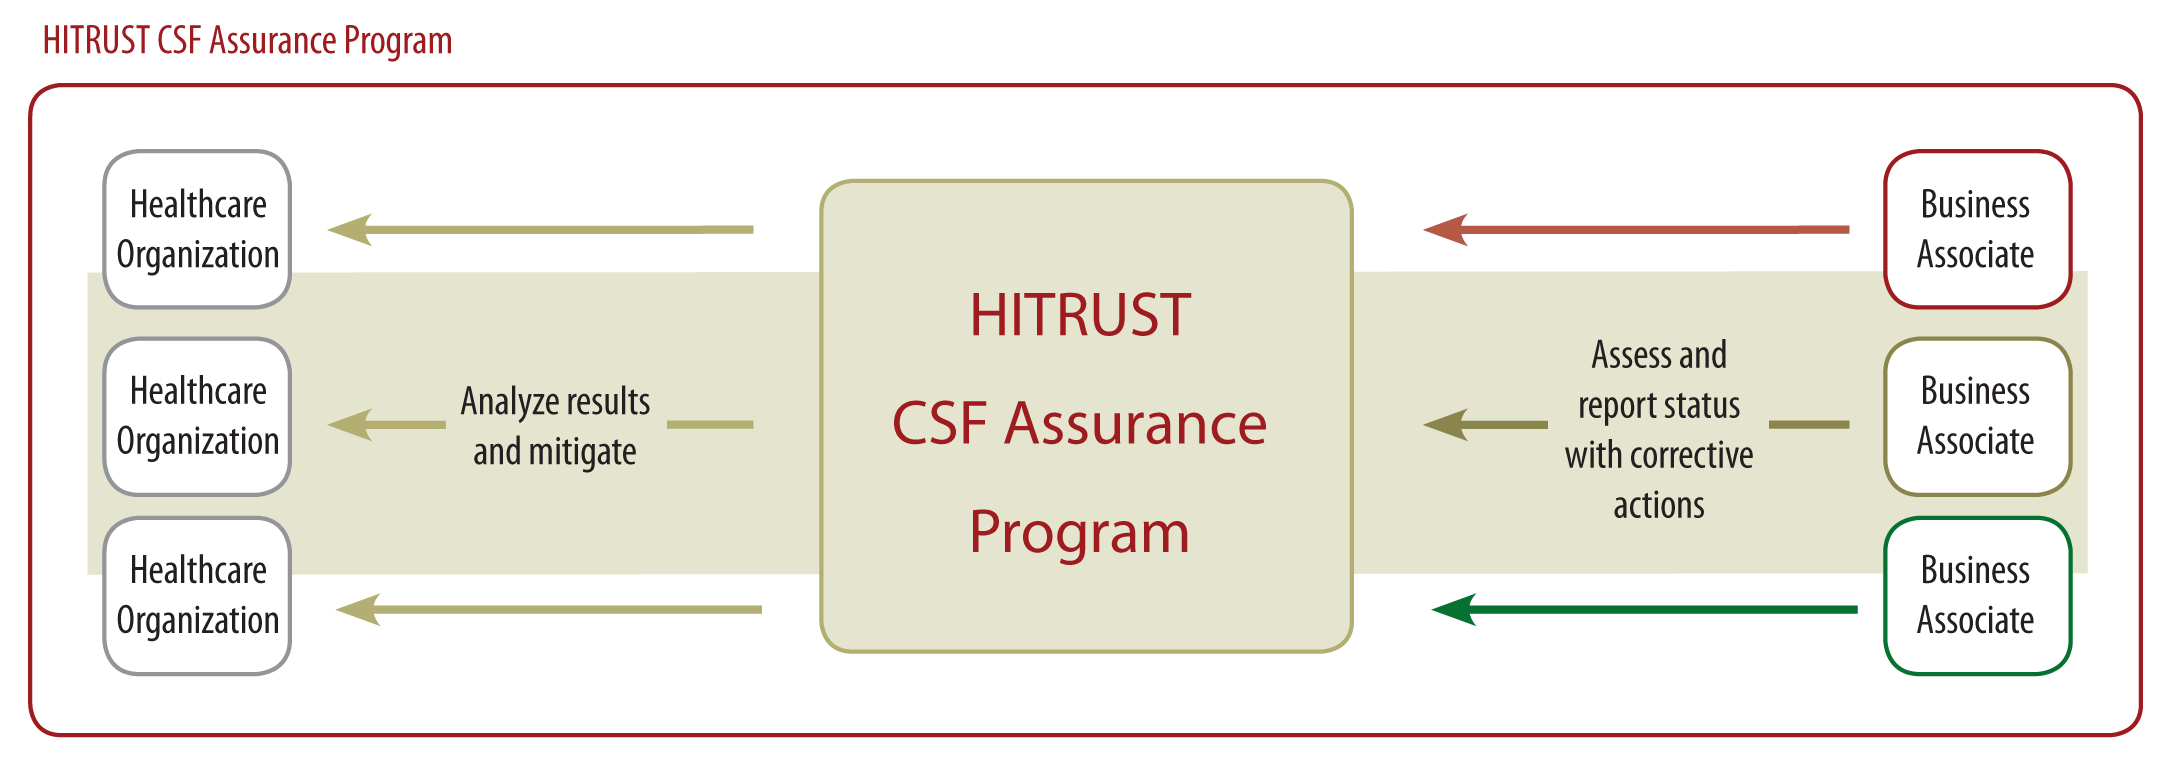 CSF Assurance Program Provides a common set of information security requirements, assessment tools and reporting processes Reduces the